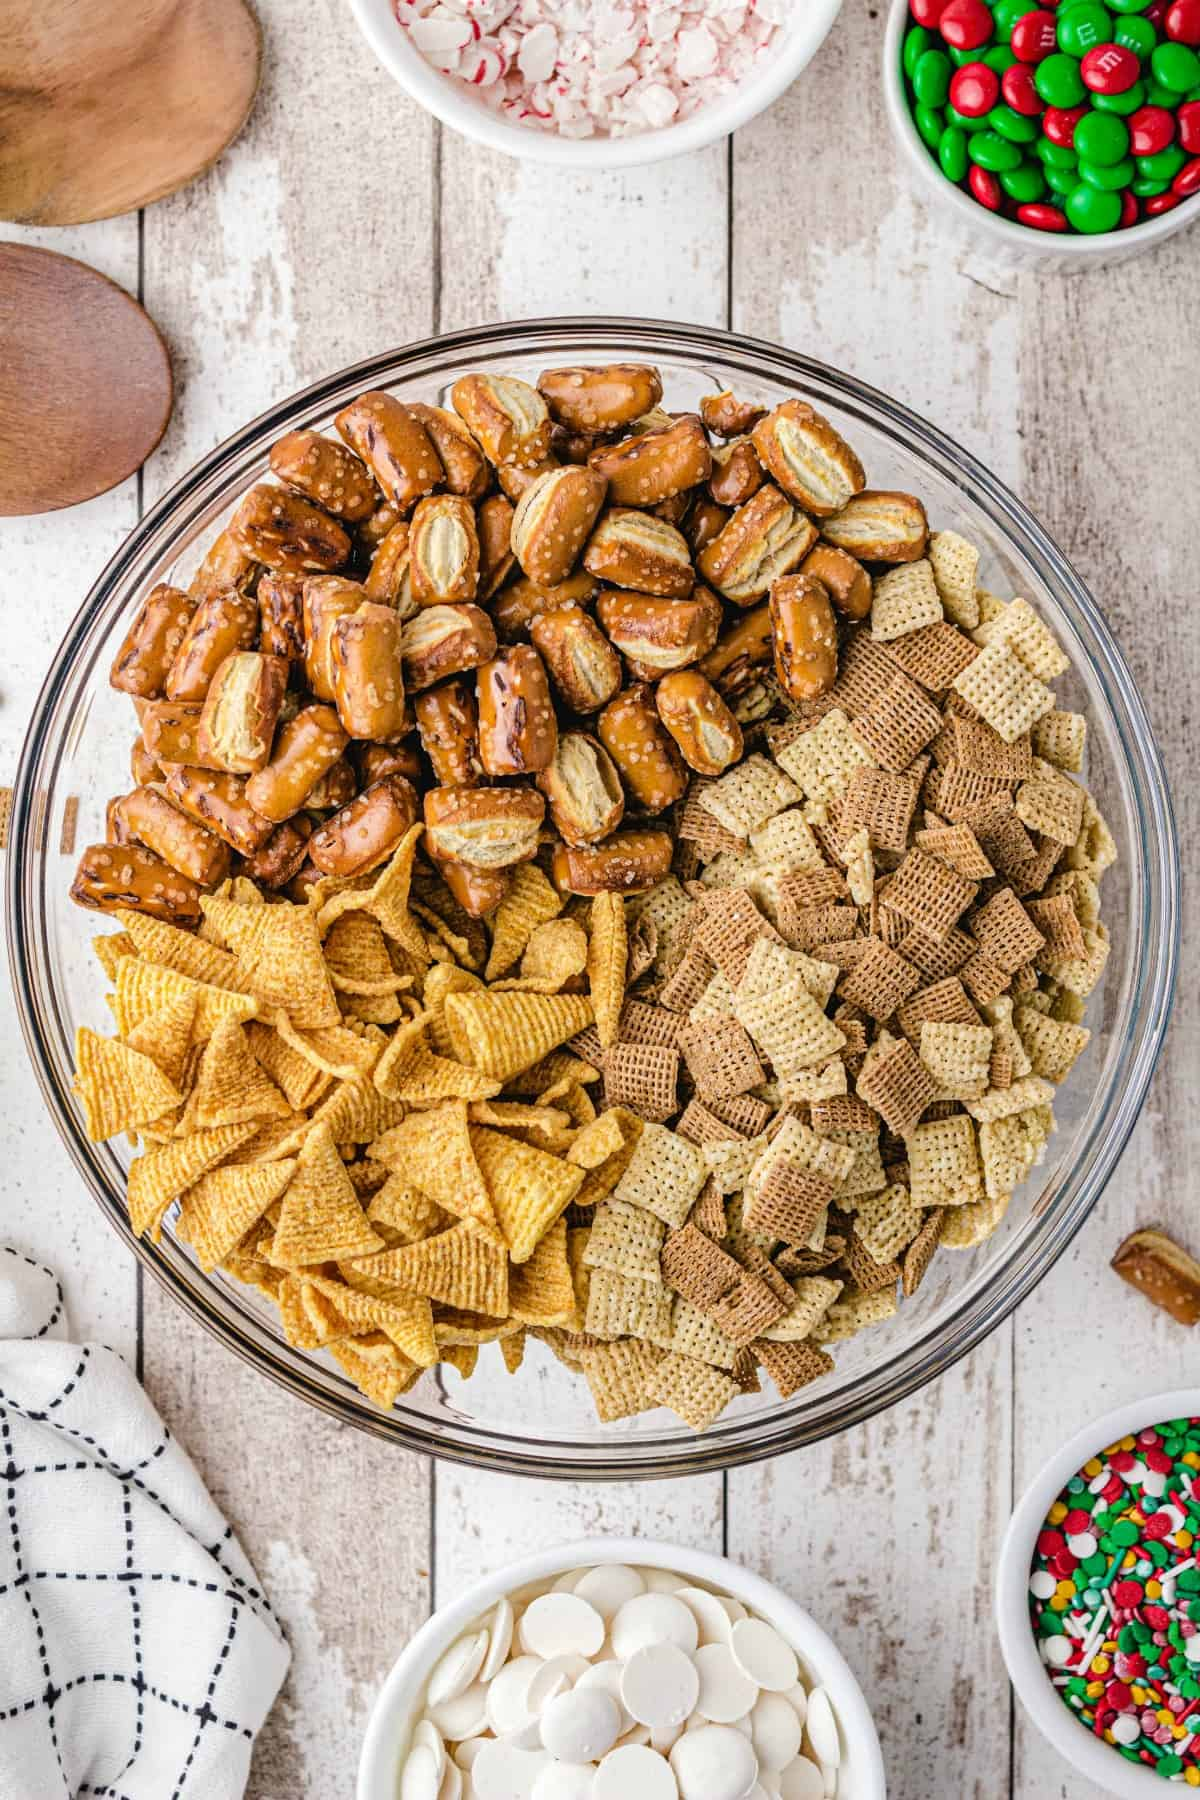 Christmas Chex Mix ingredients